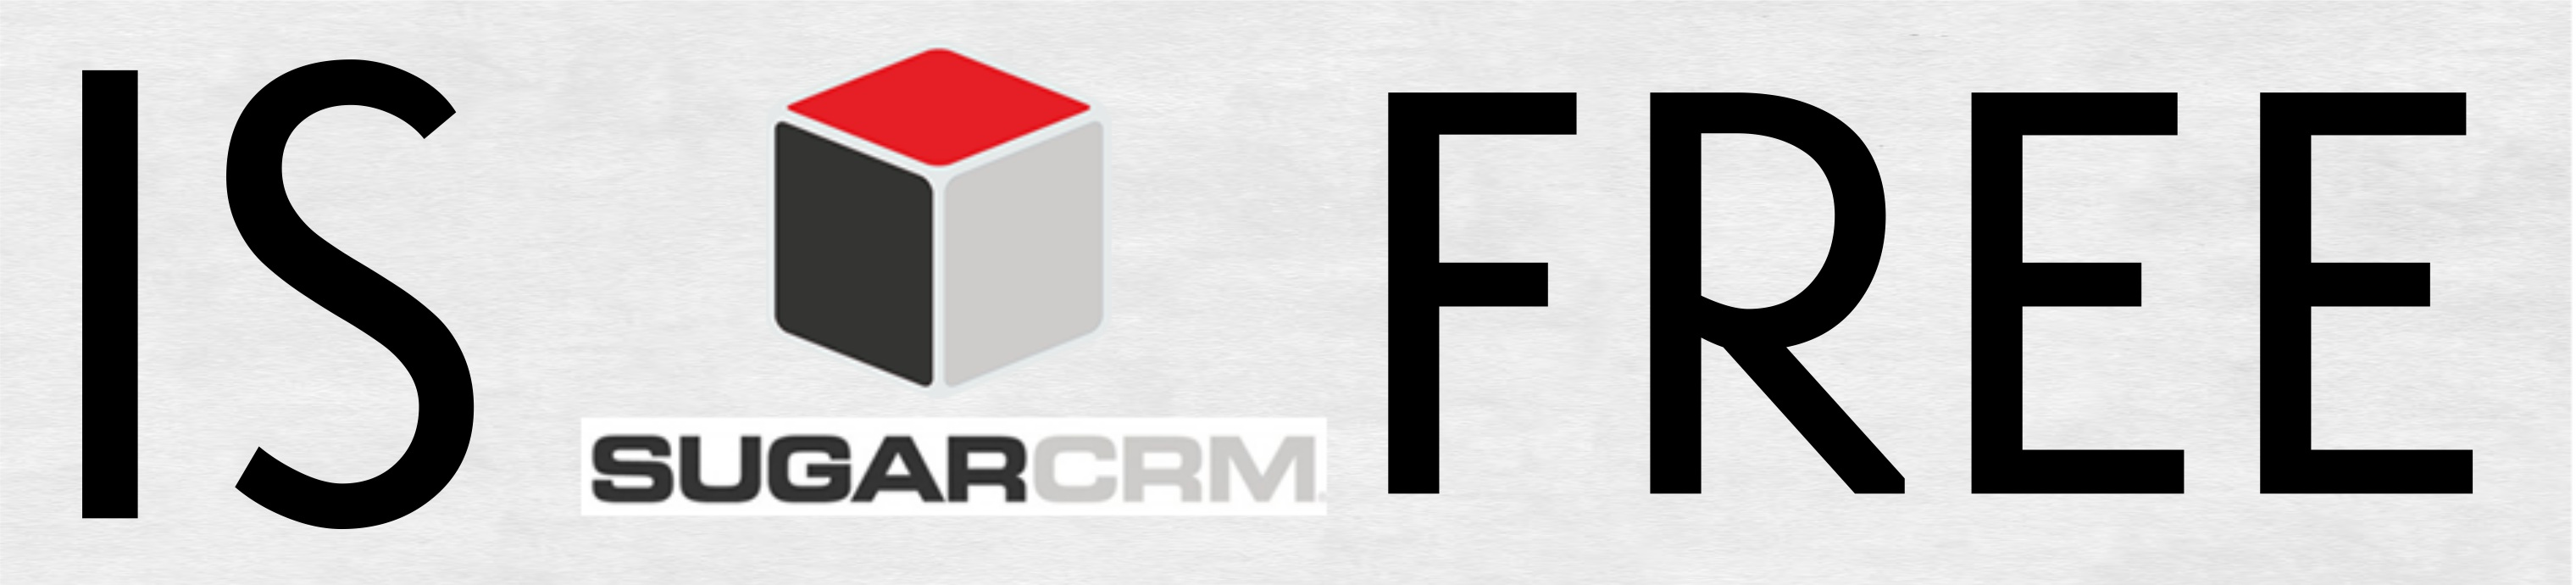 Free CRM - What is Sugar CRM, Really?